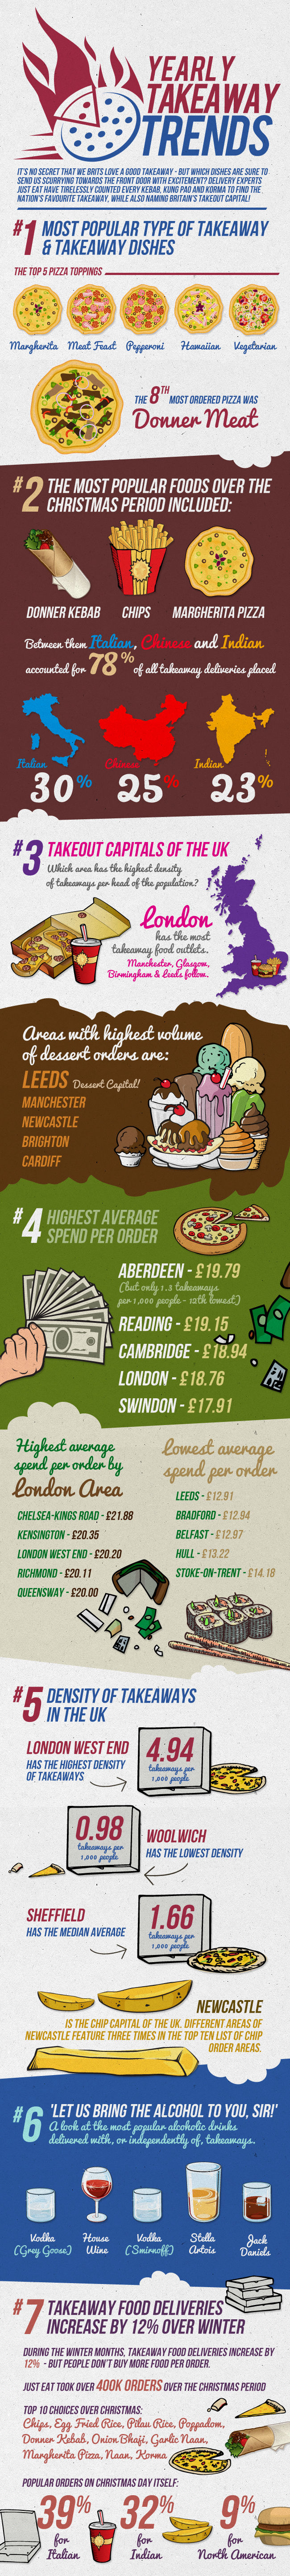 Uk Takeaway Trends Infographic A Phone And A Leaflet Can